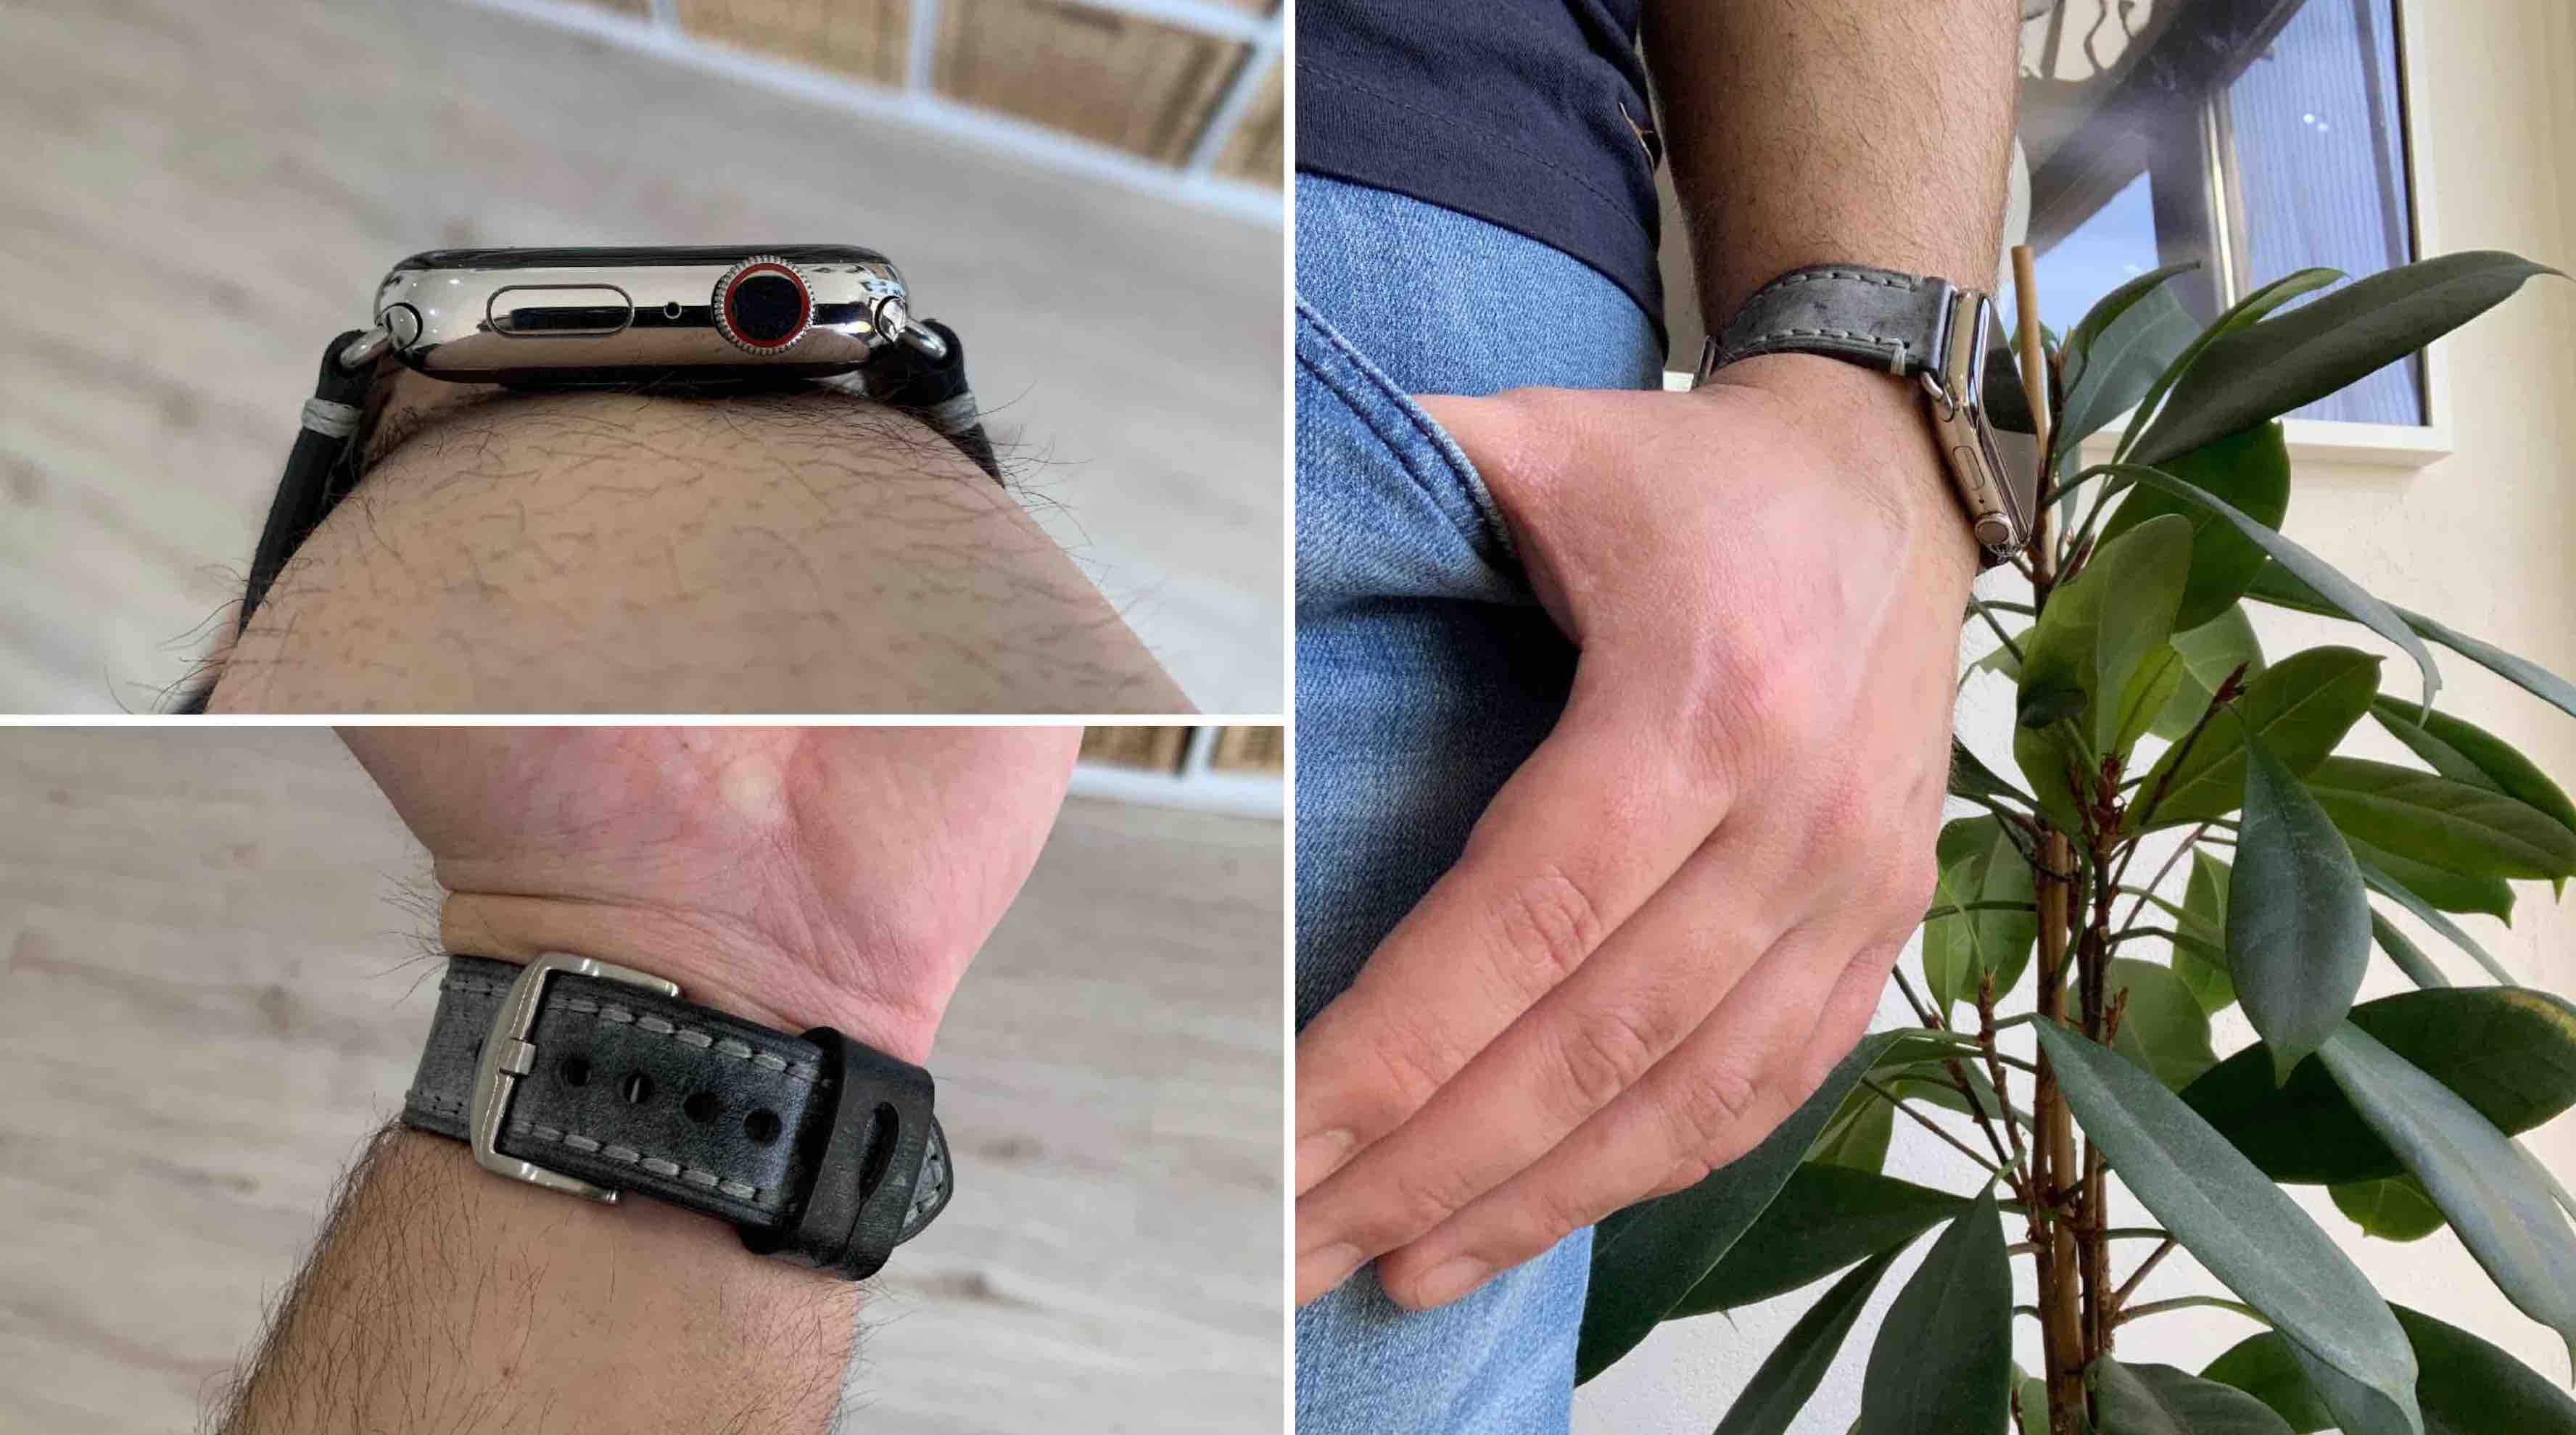 Maikes_Apple_Watch_Armbänder_Review_Leder2 Echtlederarmbänder für die Apple Watch von Maikes